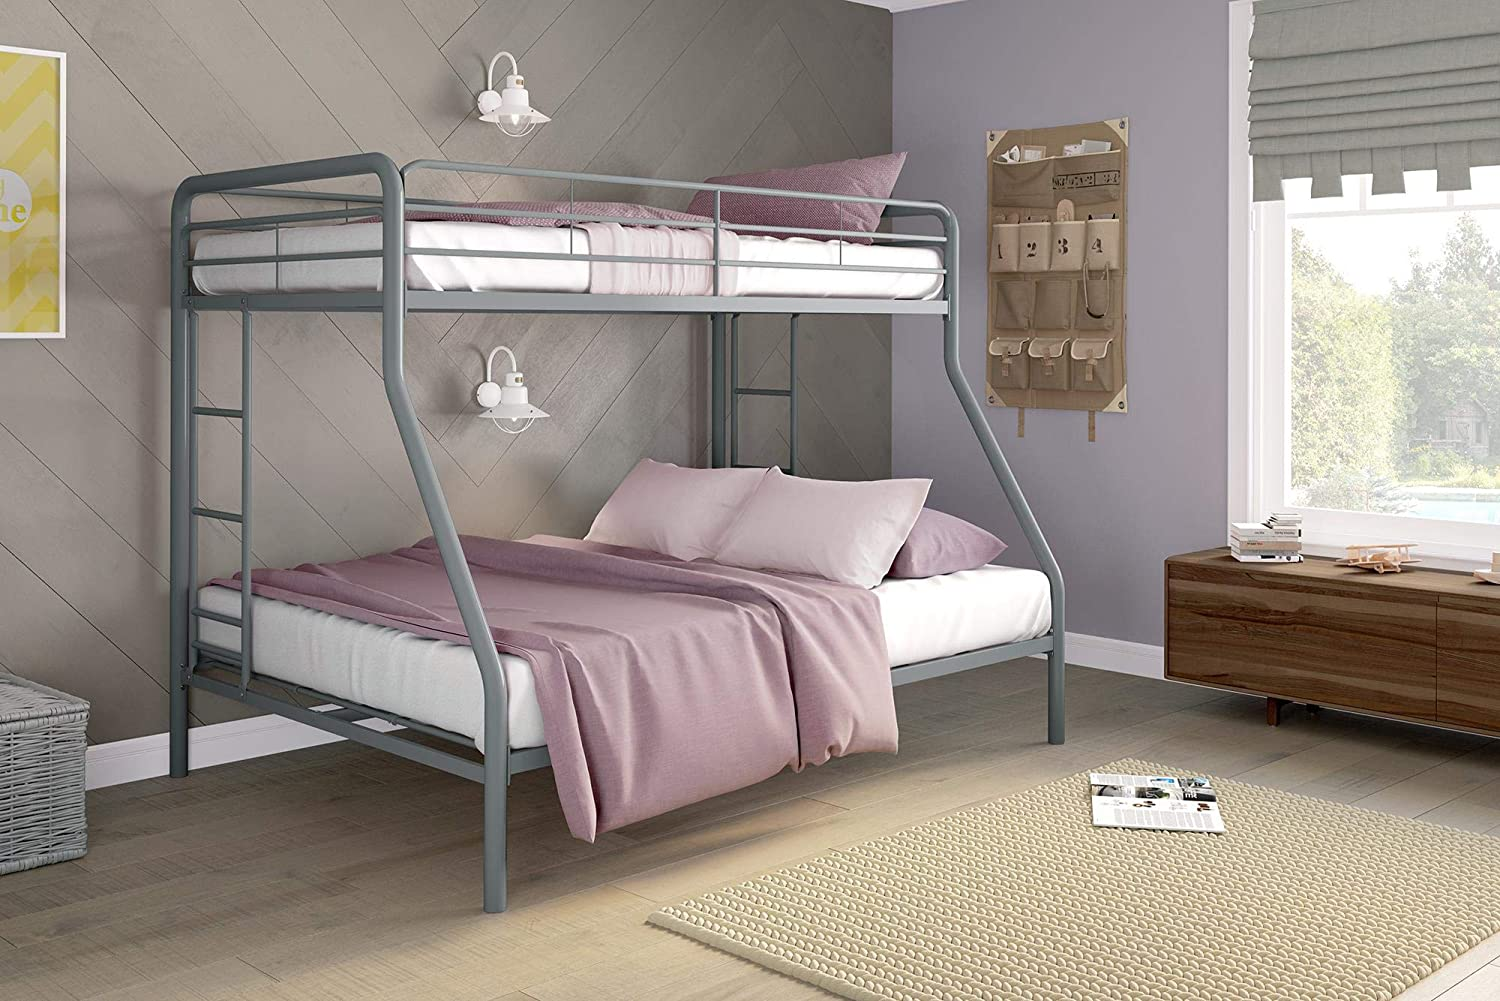 new product 2c5de d72f5 DHP Twin-Over-Full Bunk Bed with Metal Frame and Ladder, Space-Saving  Design, Silver